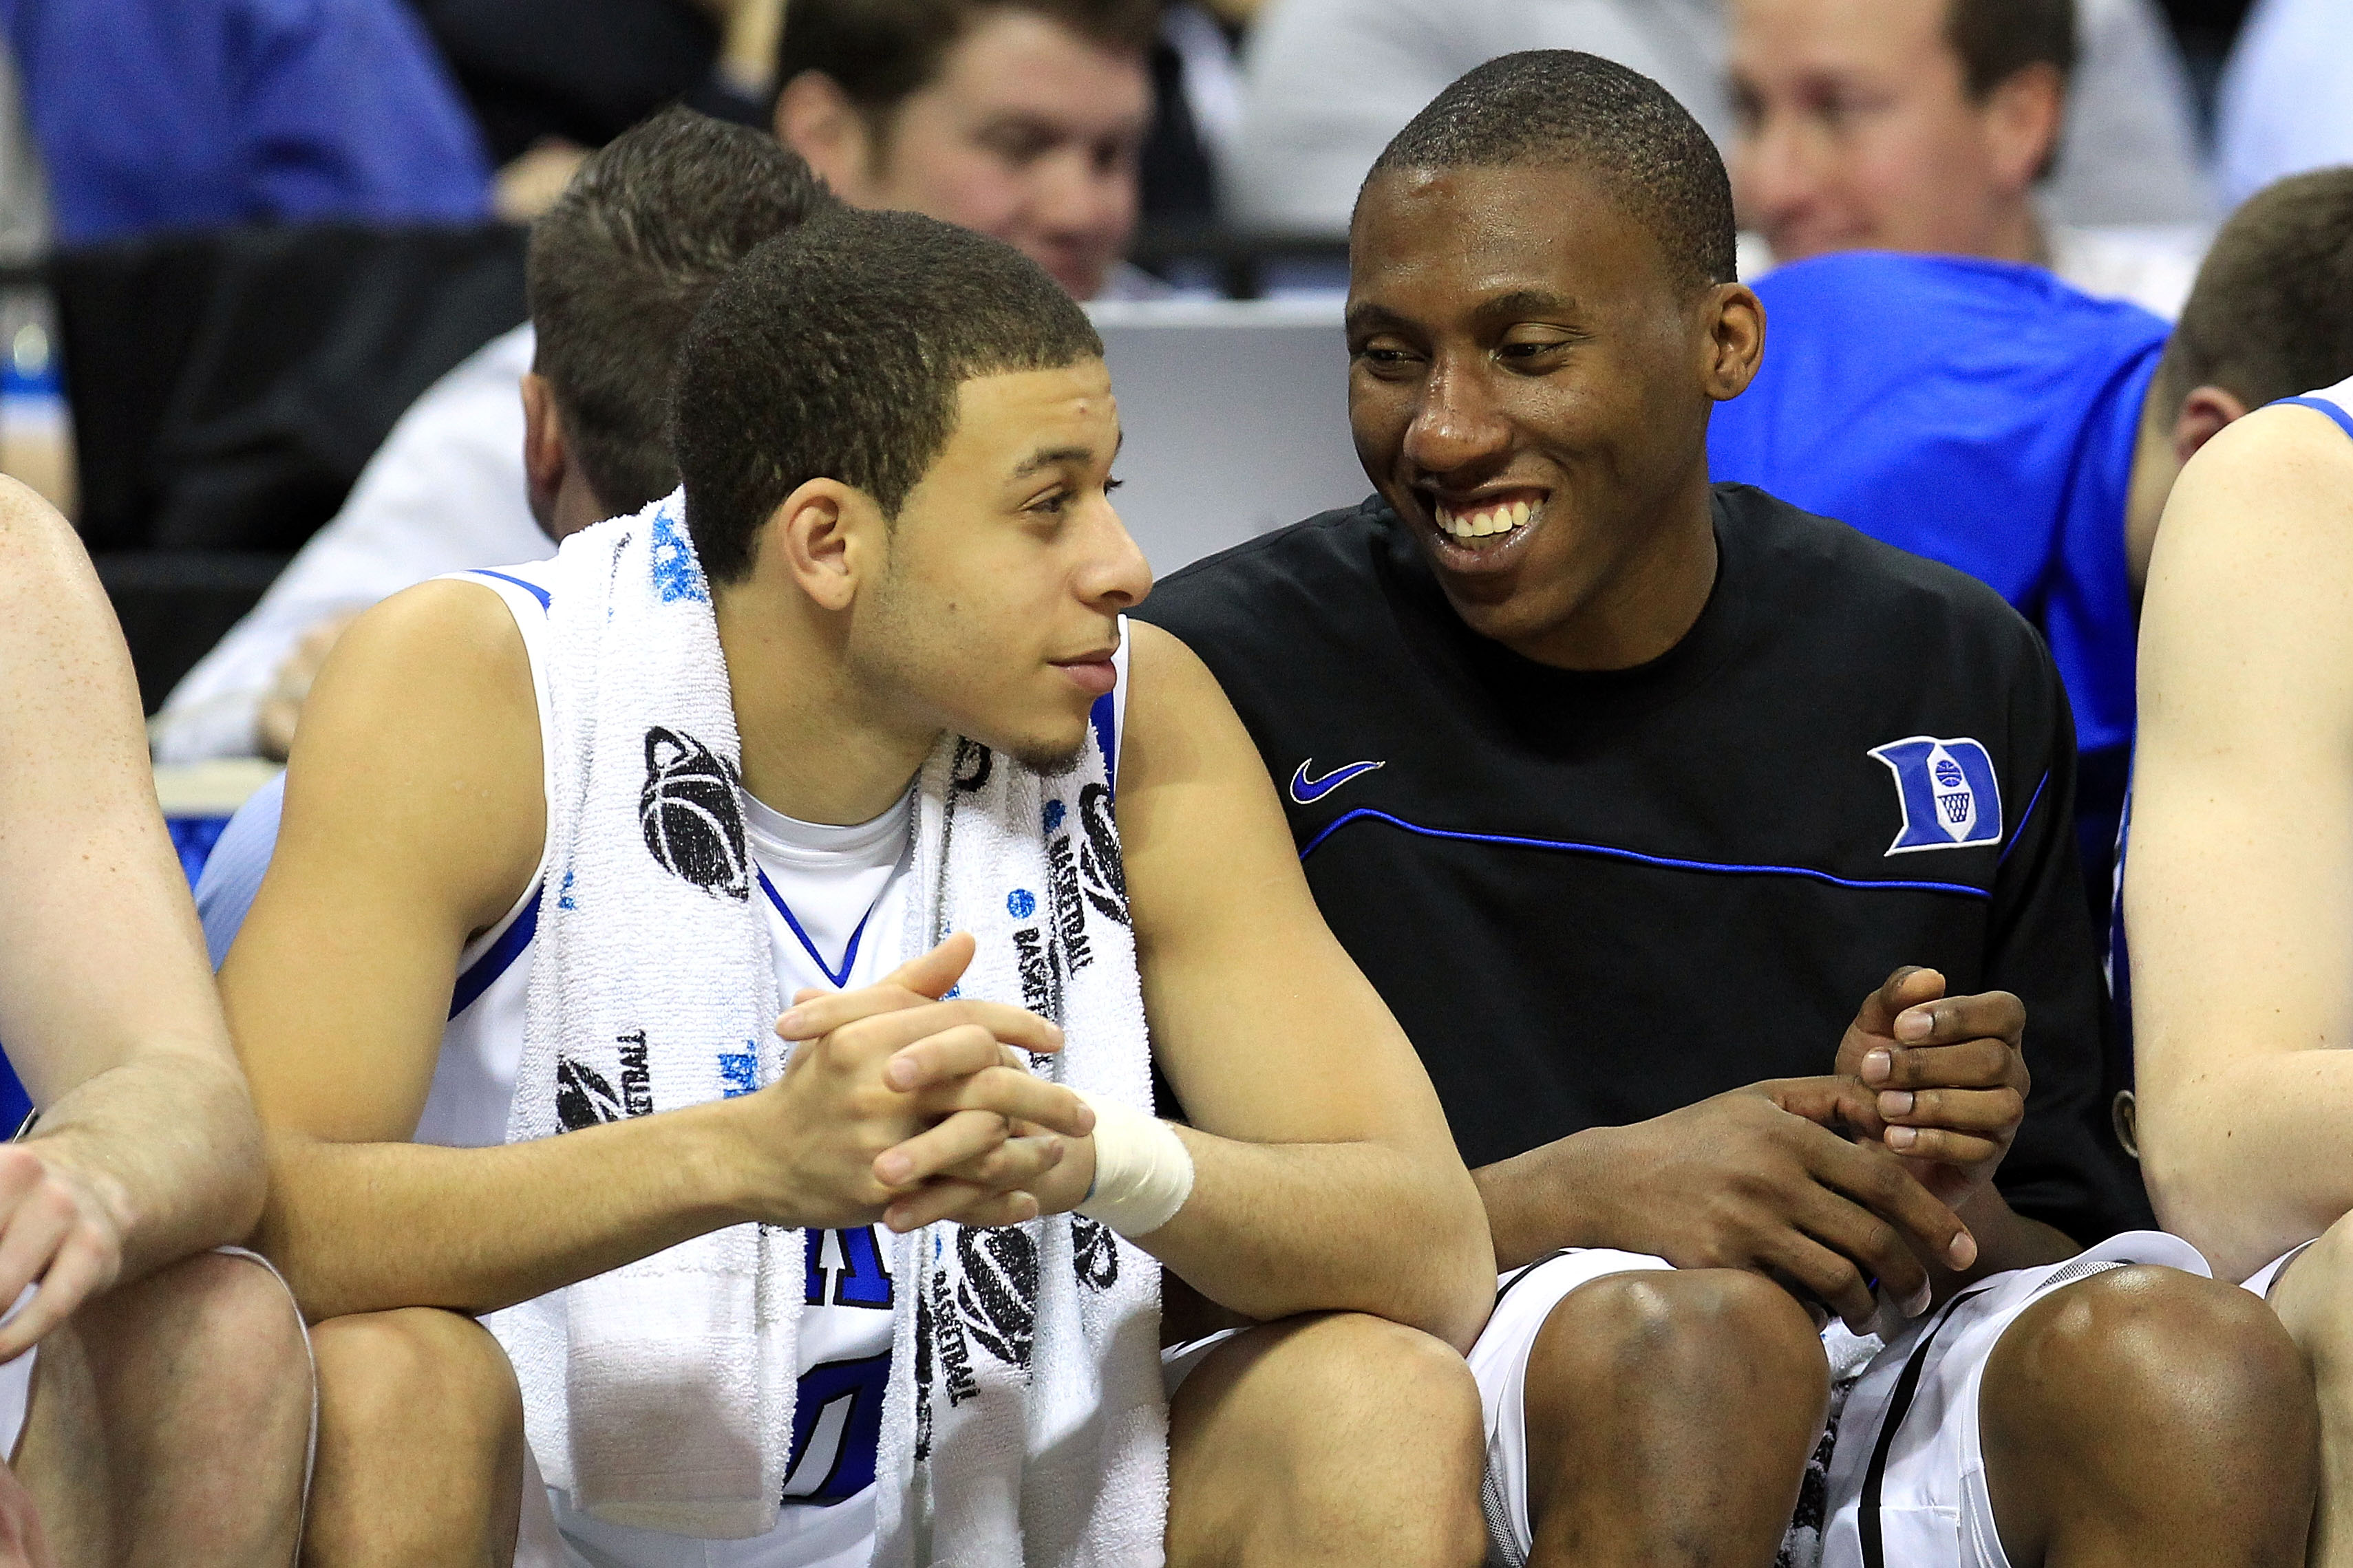 CHARLOTTE, NC - MARCH 18:  Seth Curry #30 and Nolan Smith #2 of the Duke Blue Devils talk on the bench late in the second half against the Hampton Pirates during the second round of the 2011 NCAA men's basketball tournament at Time Warner Cable Arena on M